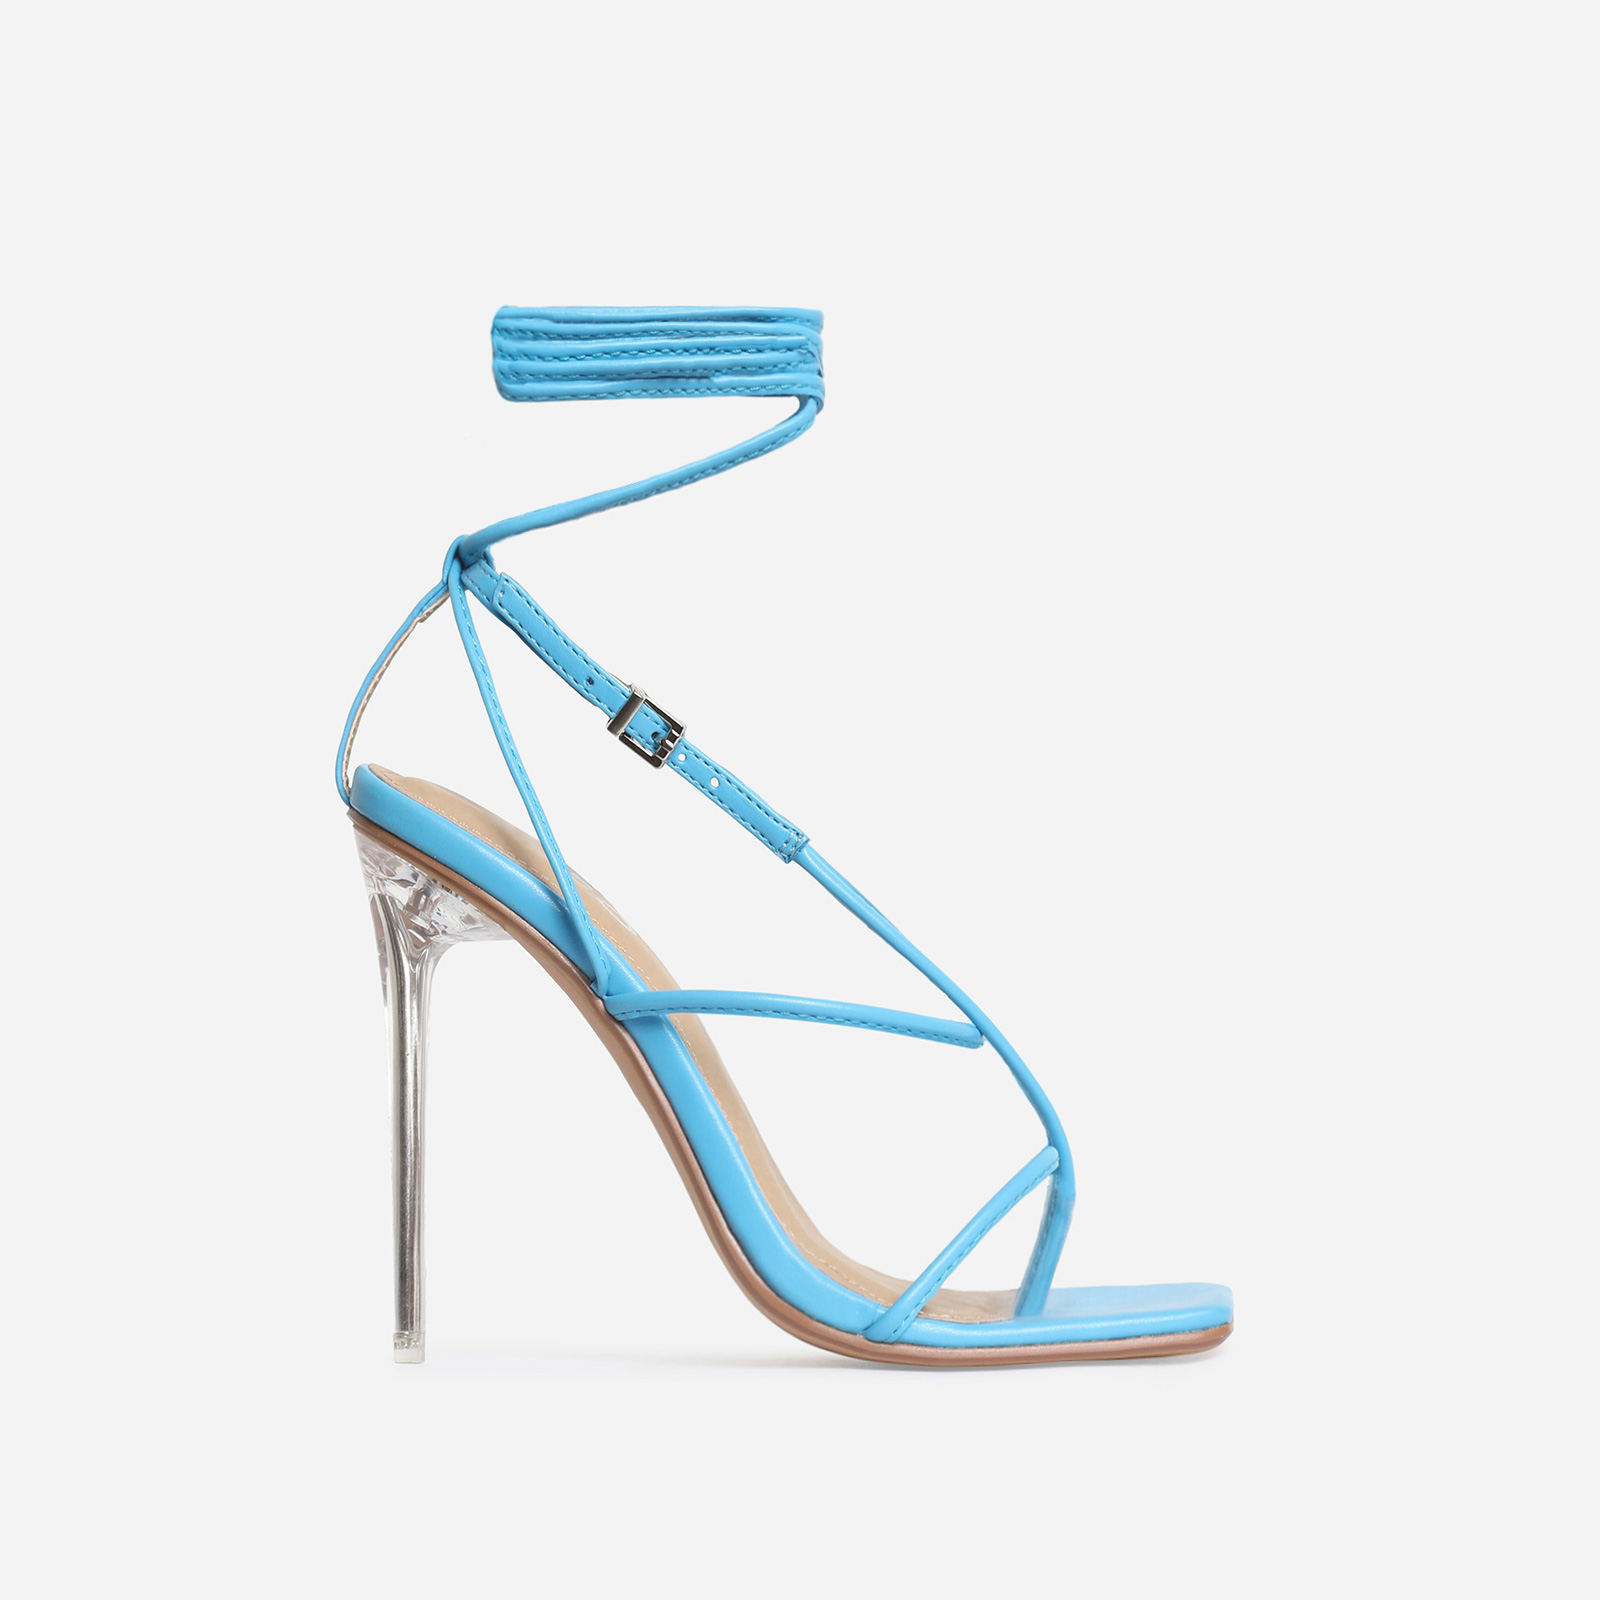 True Square Toe Lace Up Perspex Heel In Blue Faux Leather